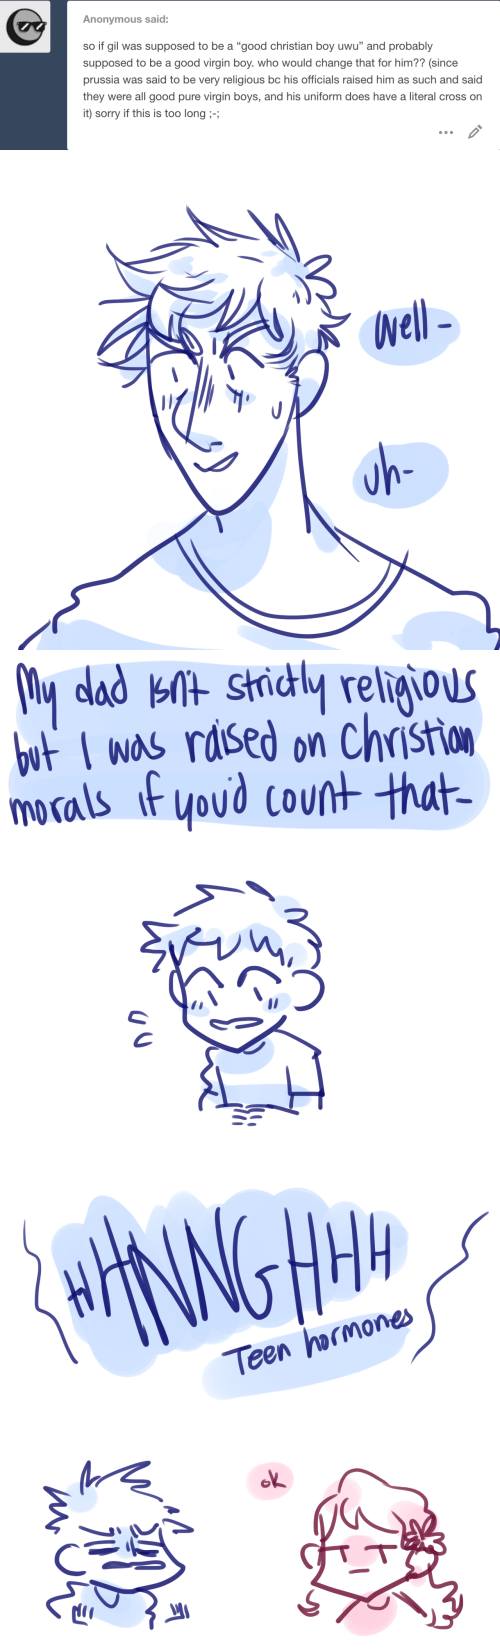 "teen: Anonymous said:  so if gil was supposed to be a ""good christian boy uwu"" and probably  supposed to be a good virgin boy. who would change that for him?? (since  prussia was said to be very religious bc his officials raised him as such and said  they were all good pure virgin boys, and his uniform does have a literal cross on  it) sorry if this is too long ;-;   Well-  uh-   My dad knt strictly religious  but I was raised on Christion  morals if you'd count that-   HHANNGHM  Teen hormones  ok  miono"